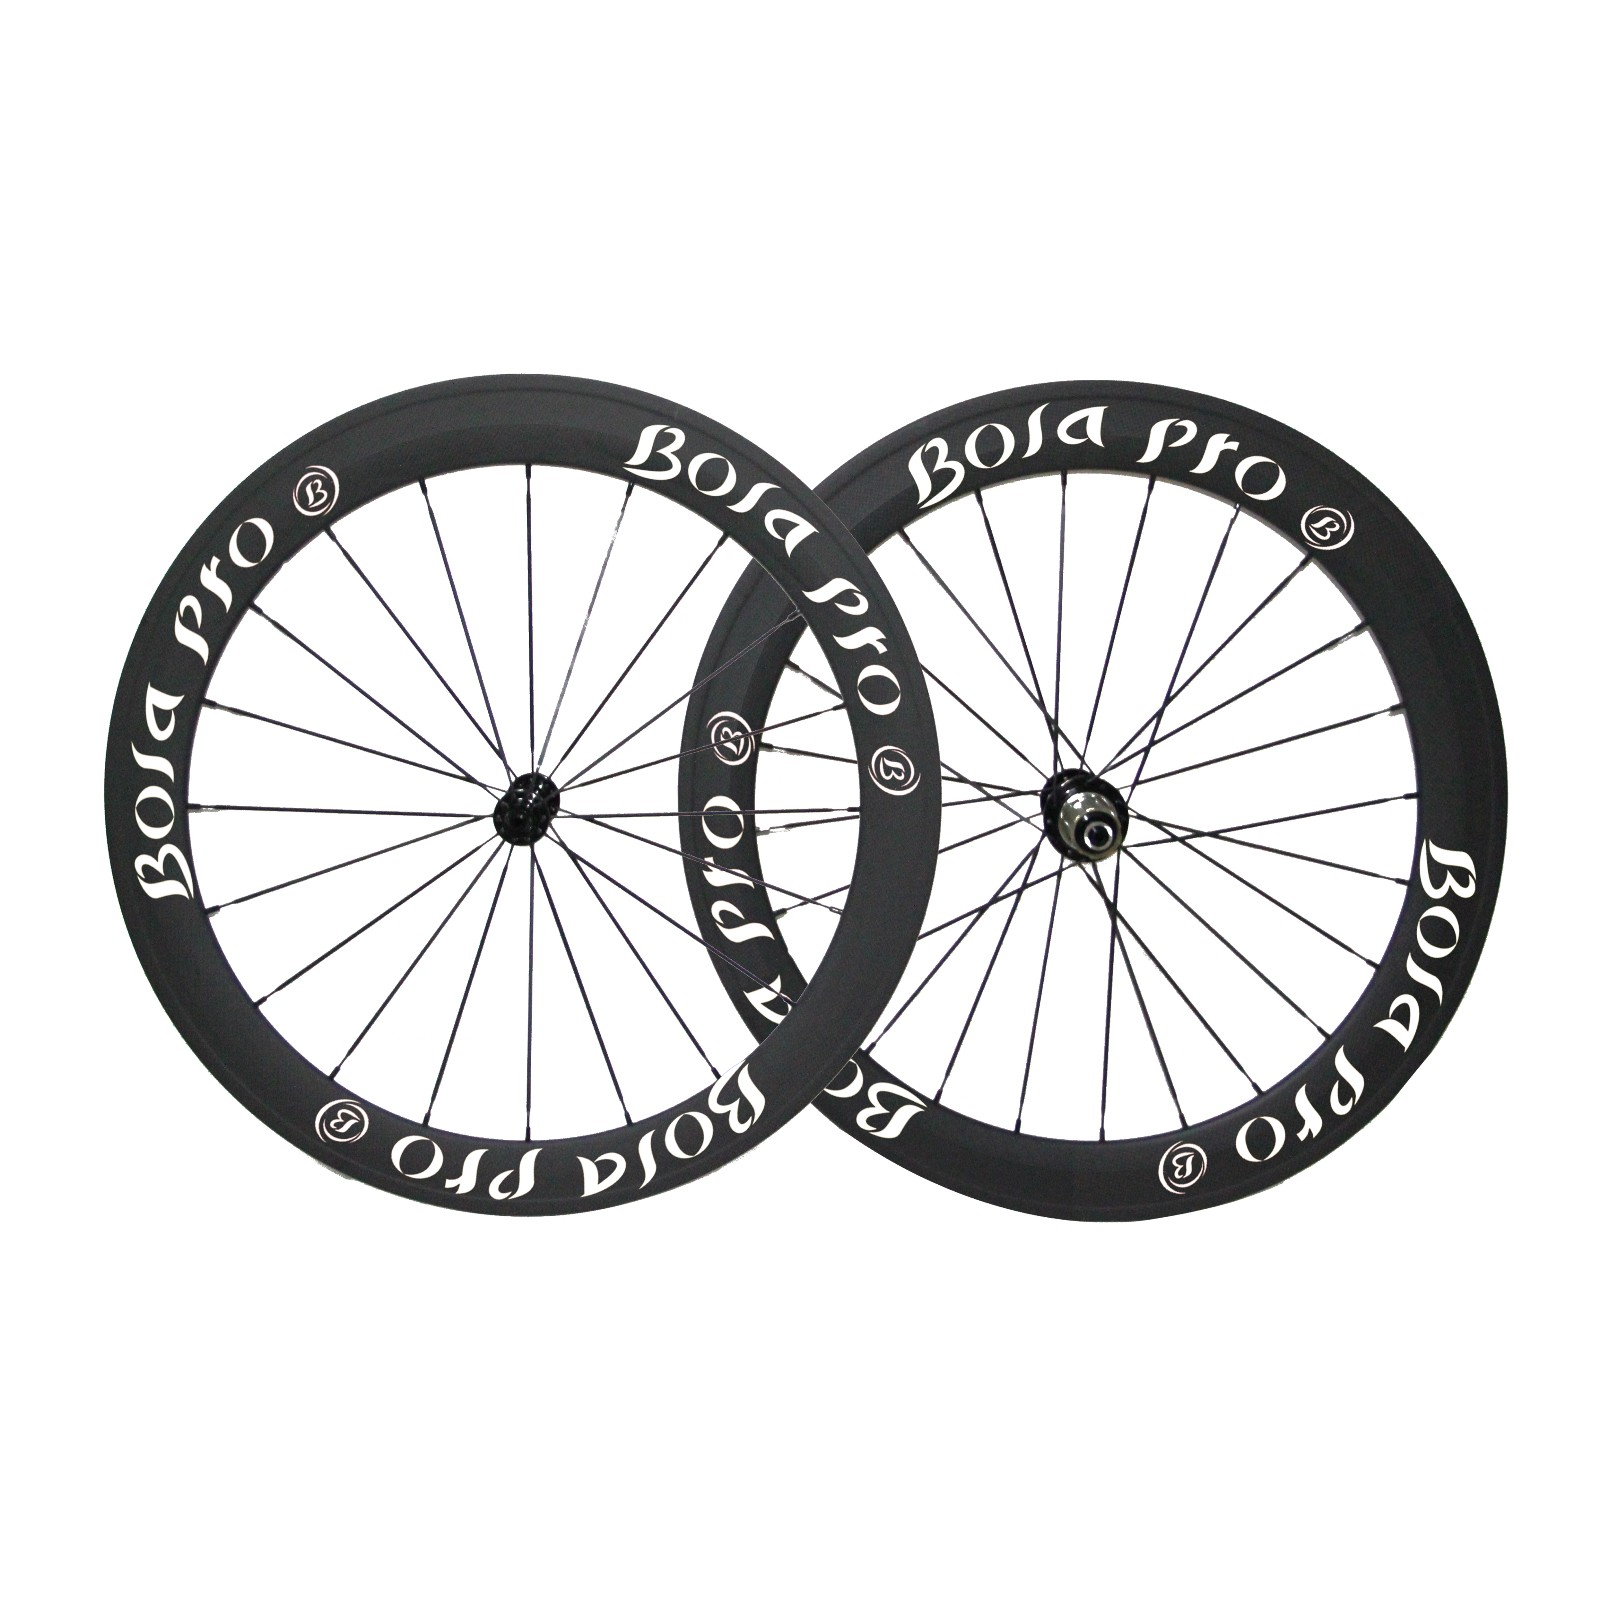 700C 50mm carbon wheelset with DT350s